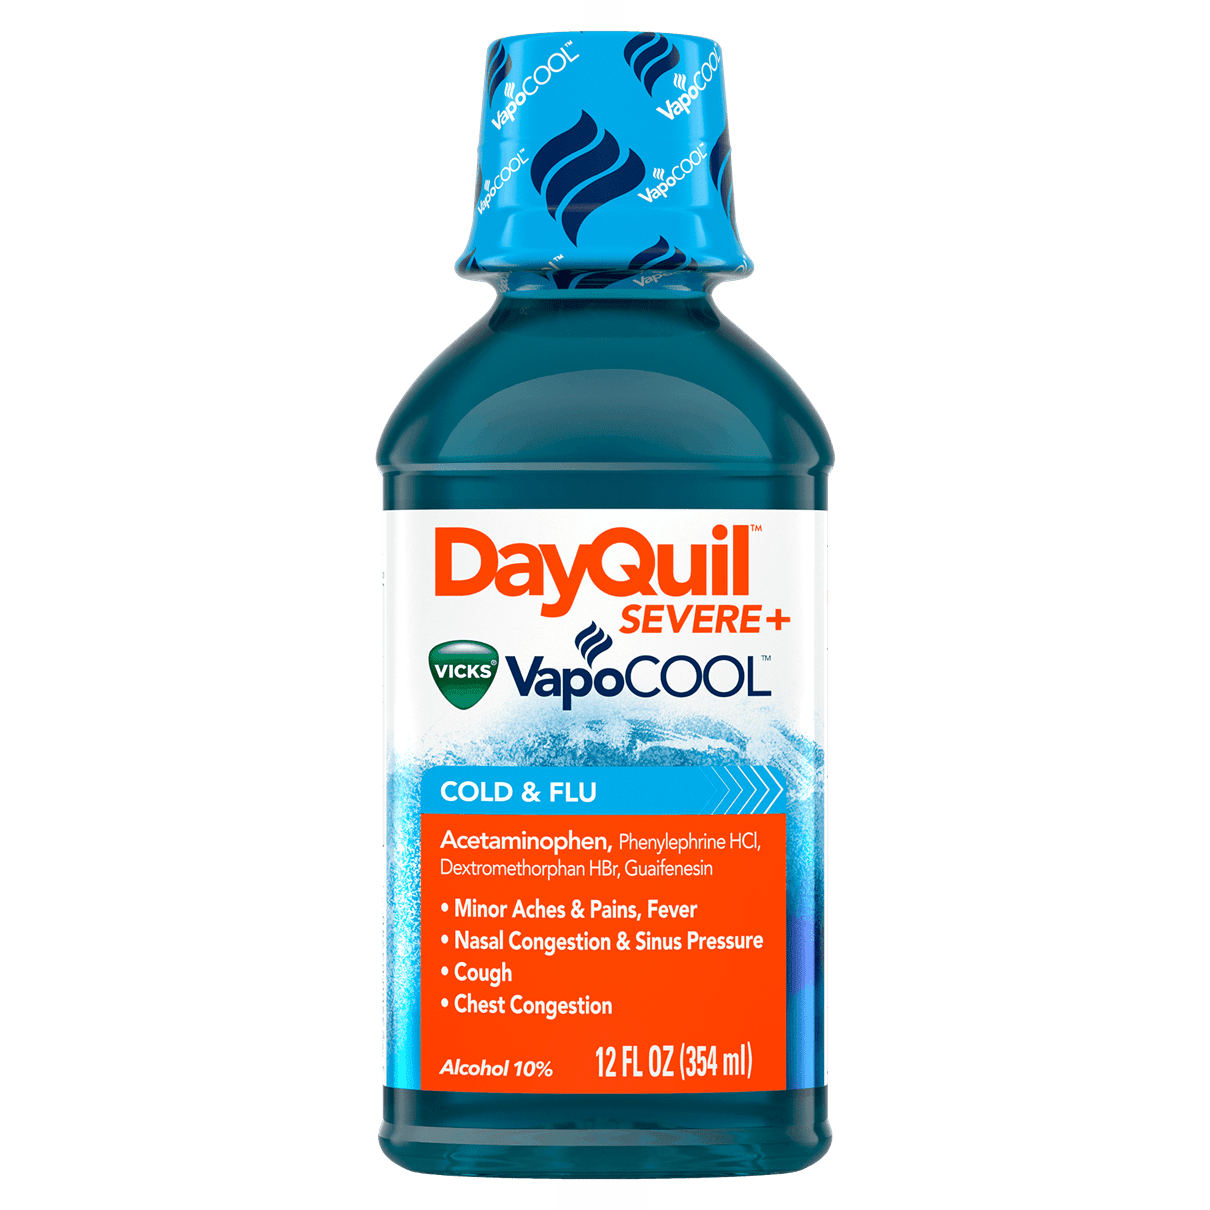 DayQuil Severe+ VapoCool